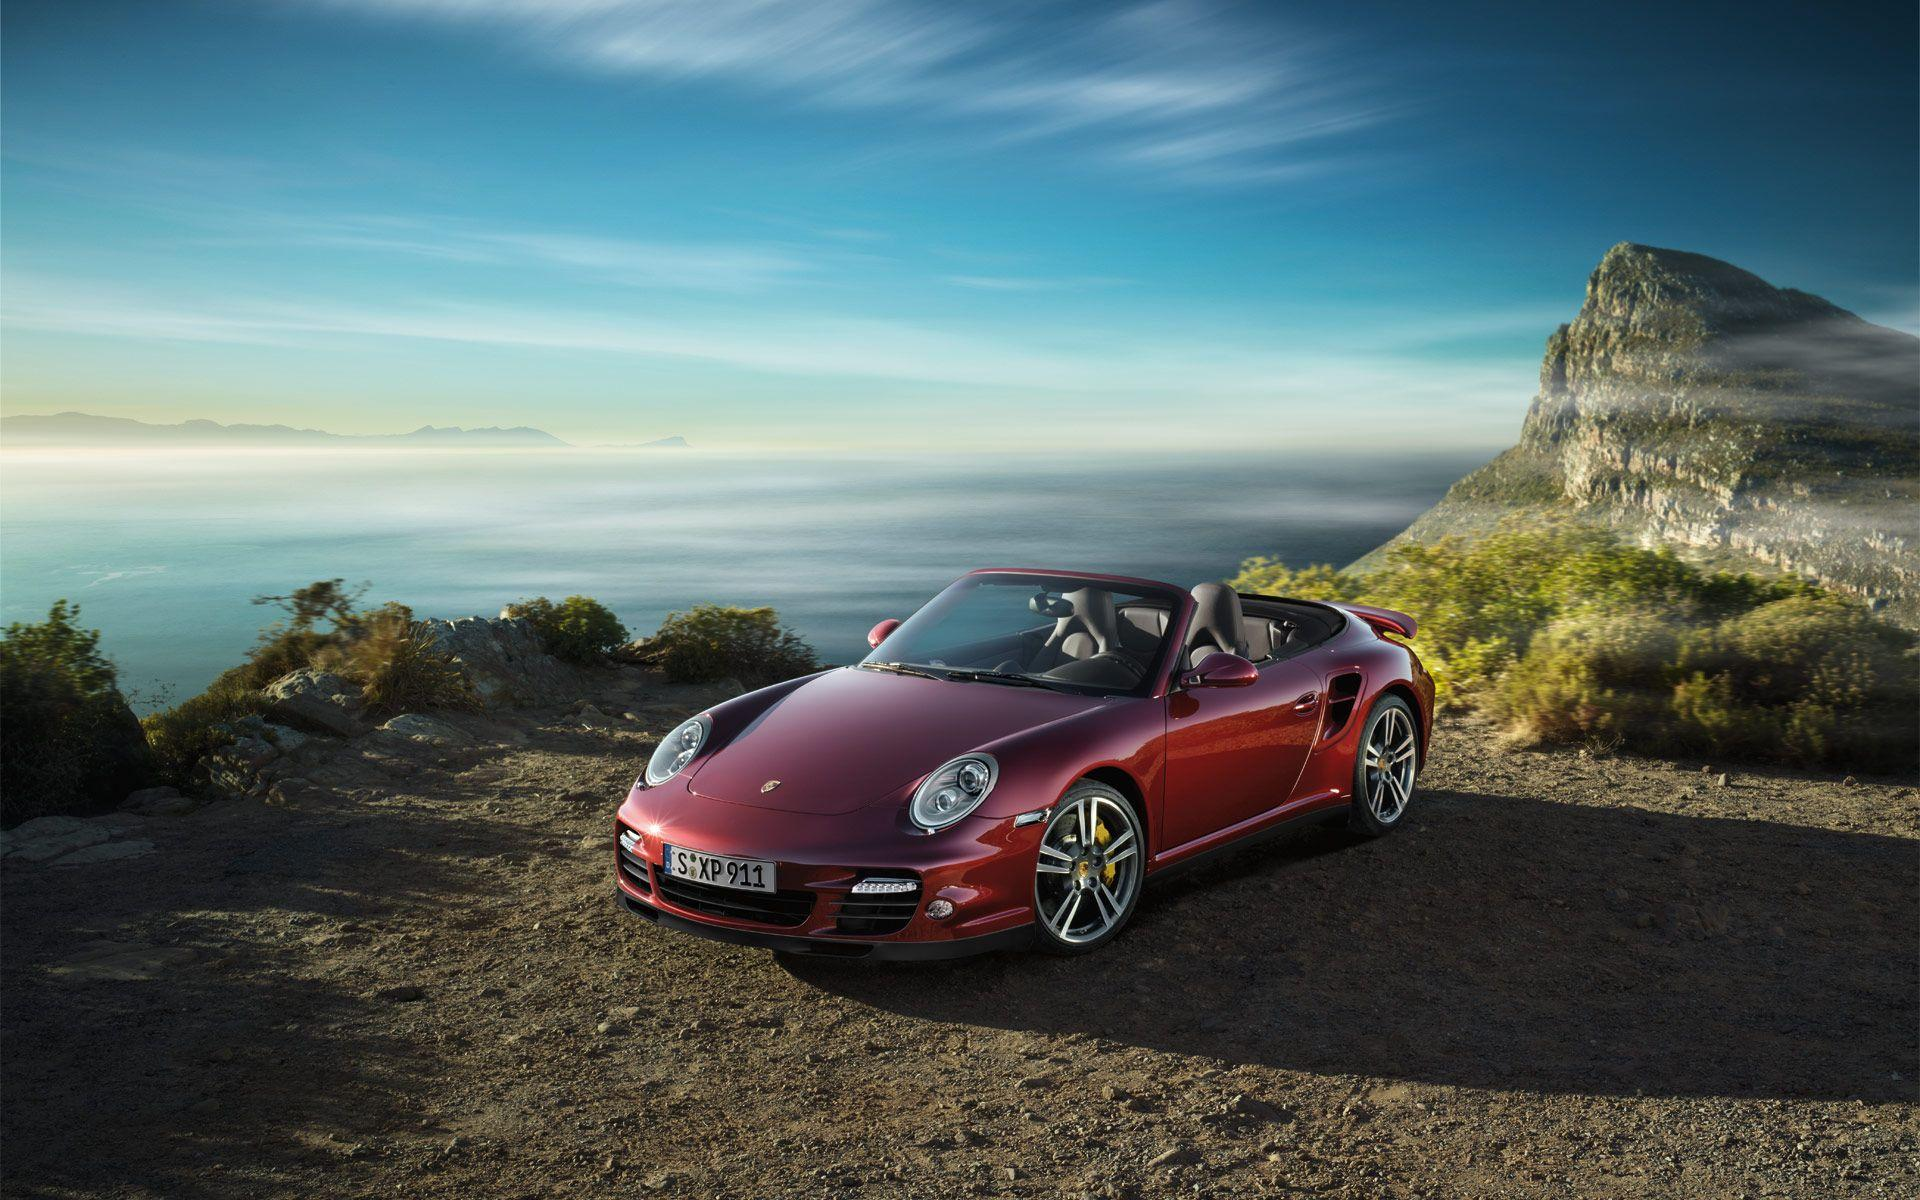 Porsche 911 Turbo Wallpapers, Awesome Porsche 911 Turbo Pictures and